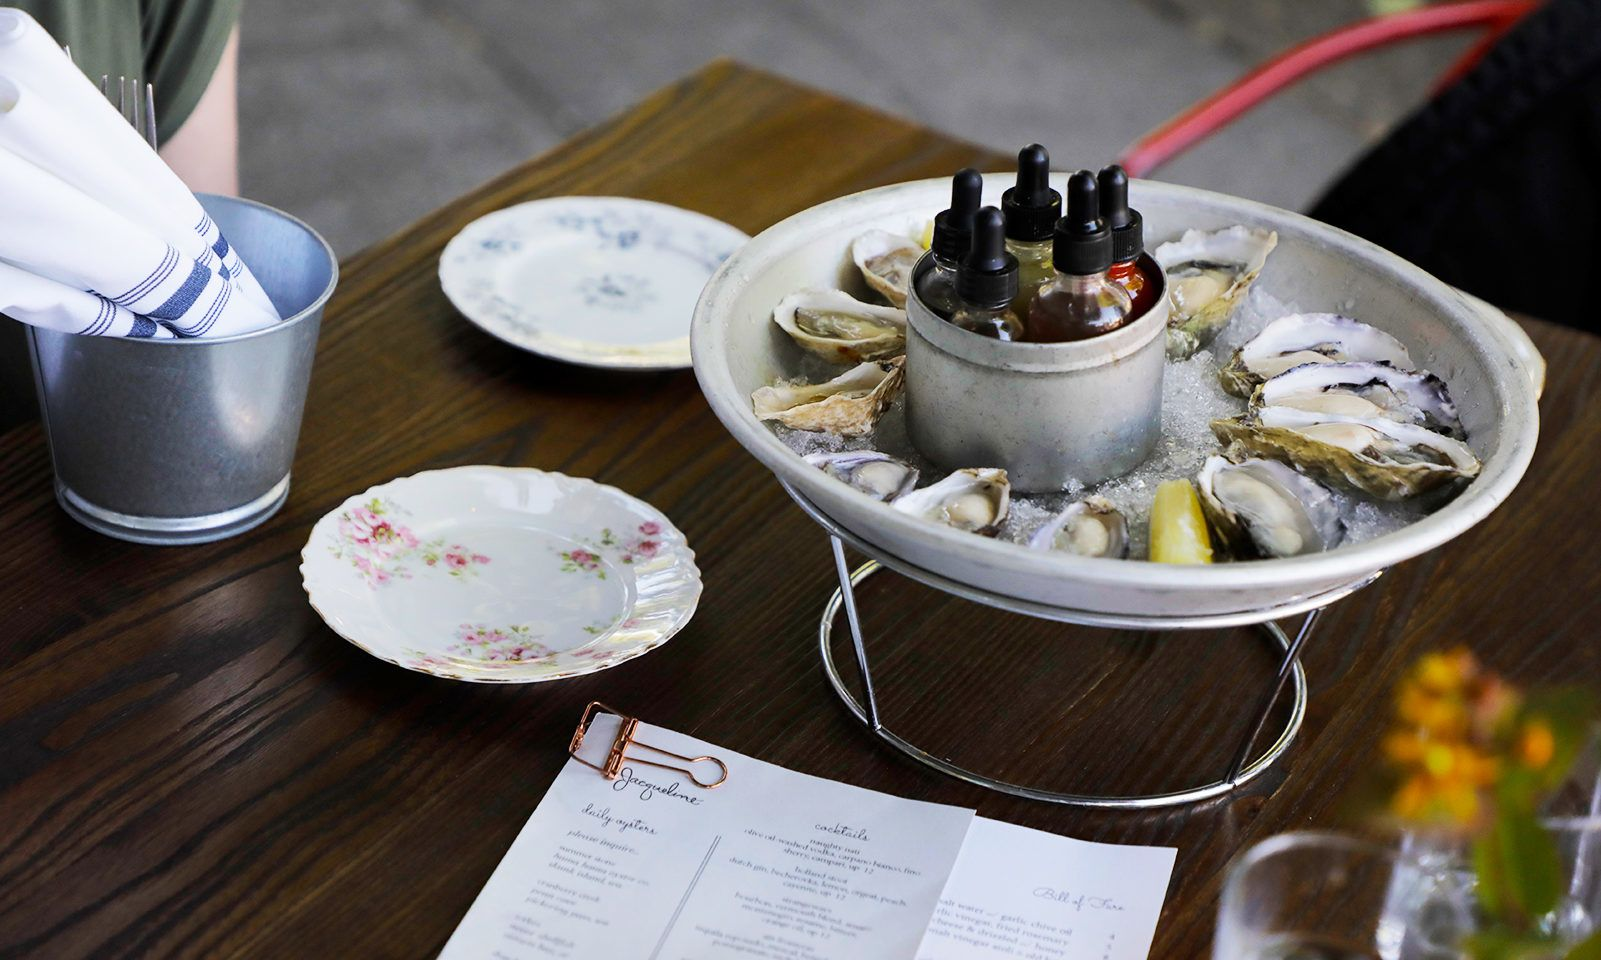 Enjoy oysters served with house-made, infused vinegars at Jacqueline in Southeast Portland's Division/Clinton neighborhood,